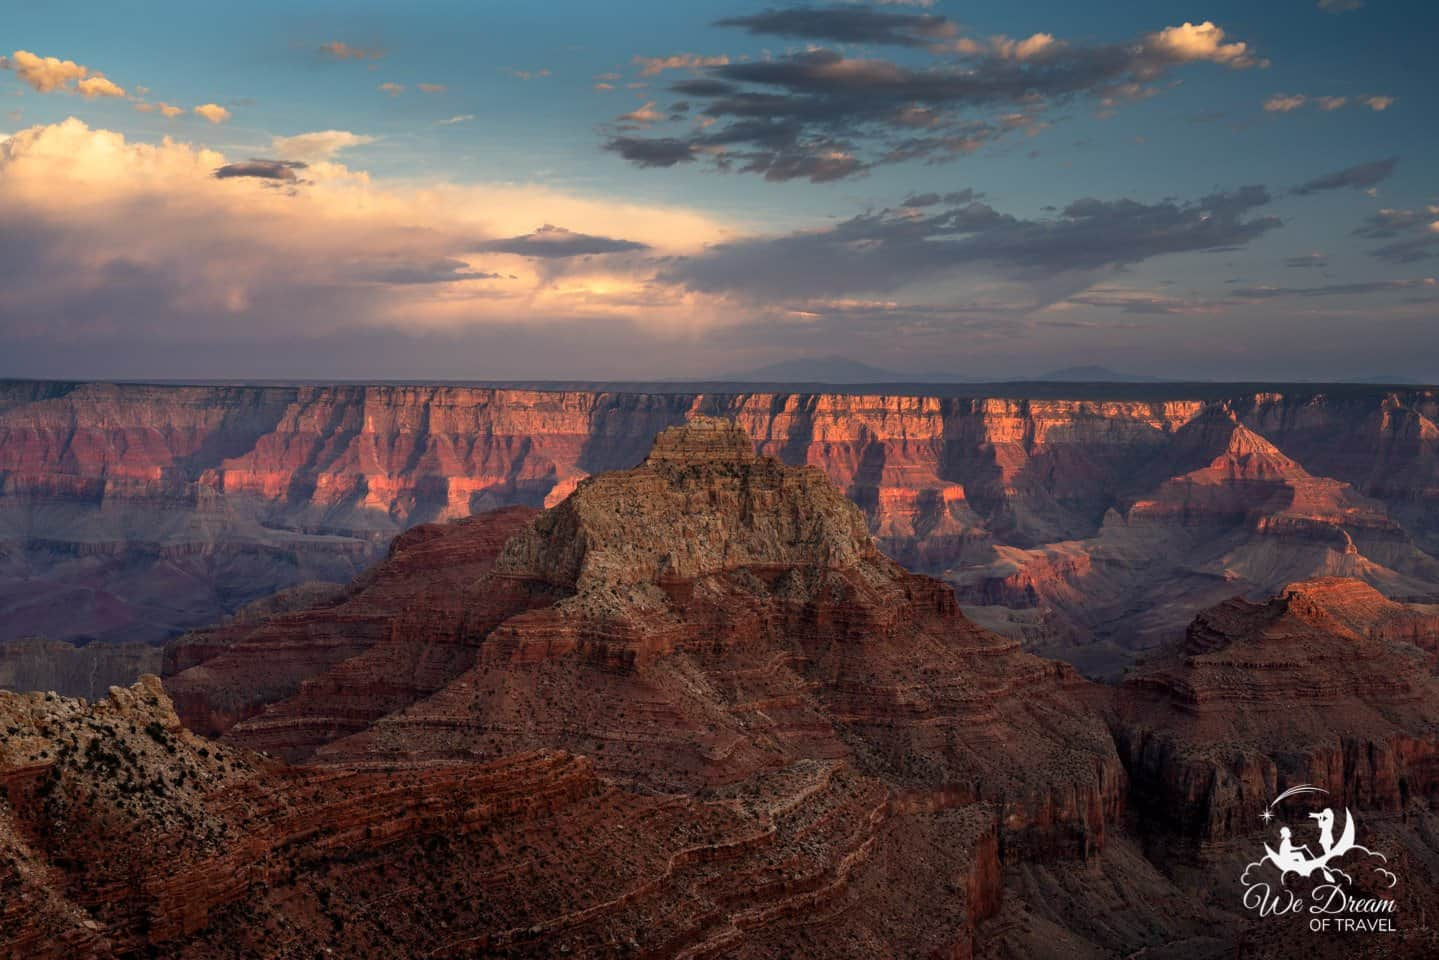 The North Rim of the Grand Canyon is worth visiting if time permits!